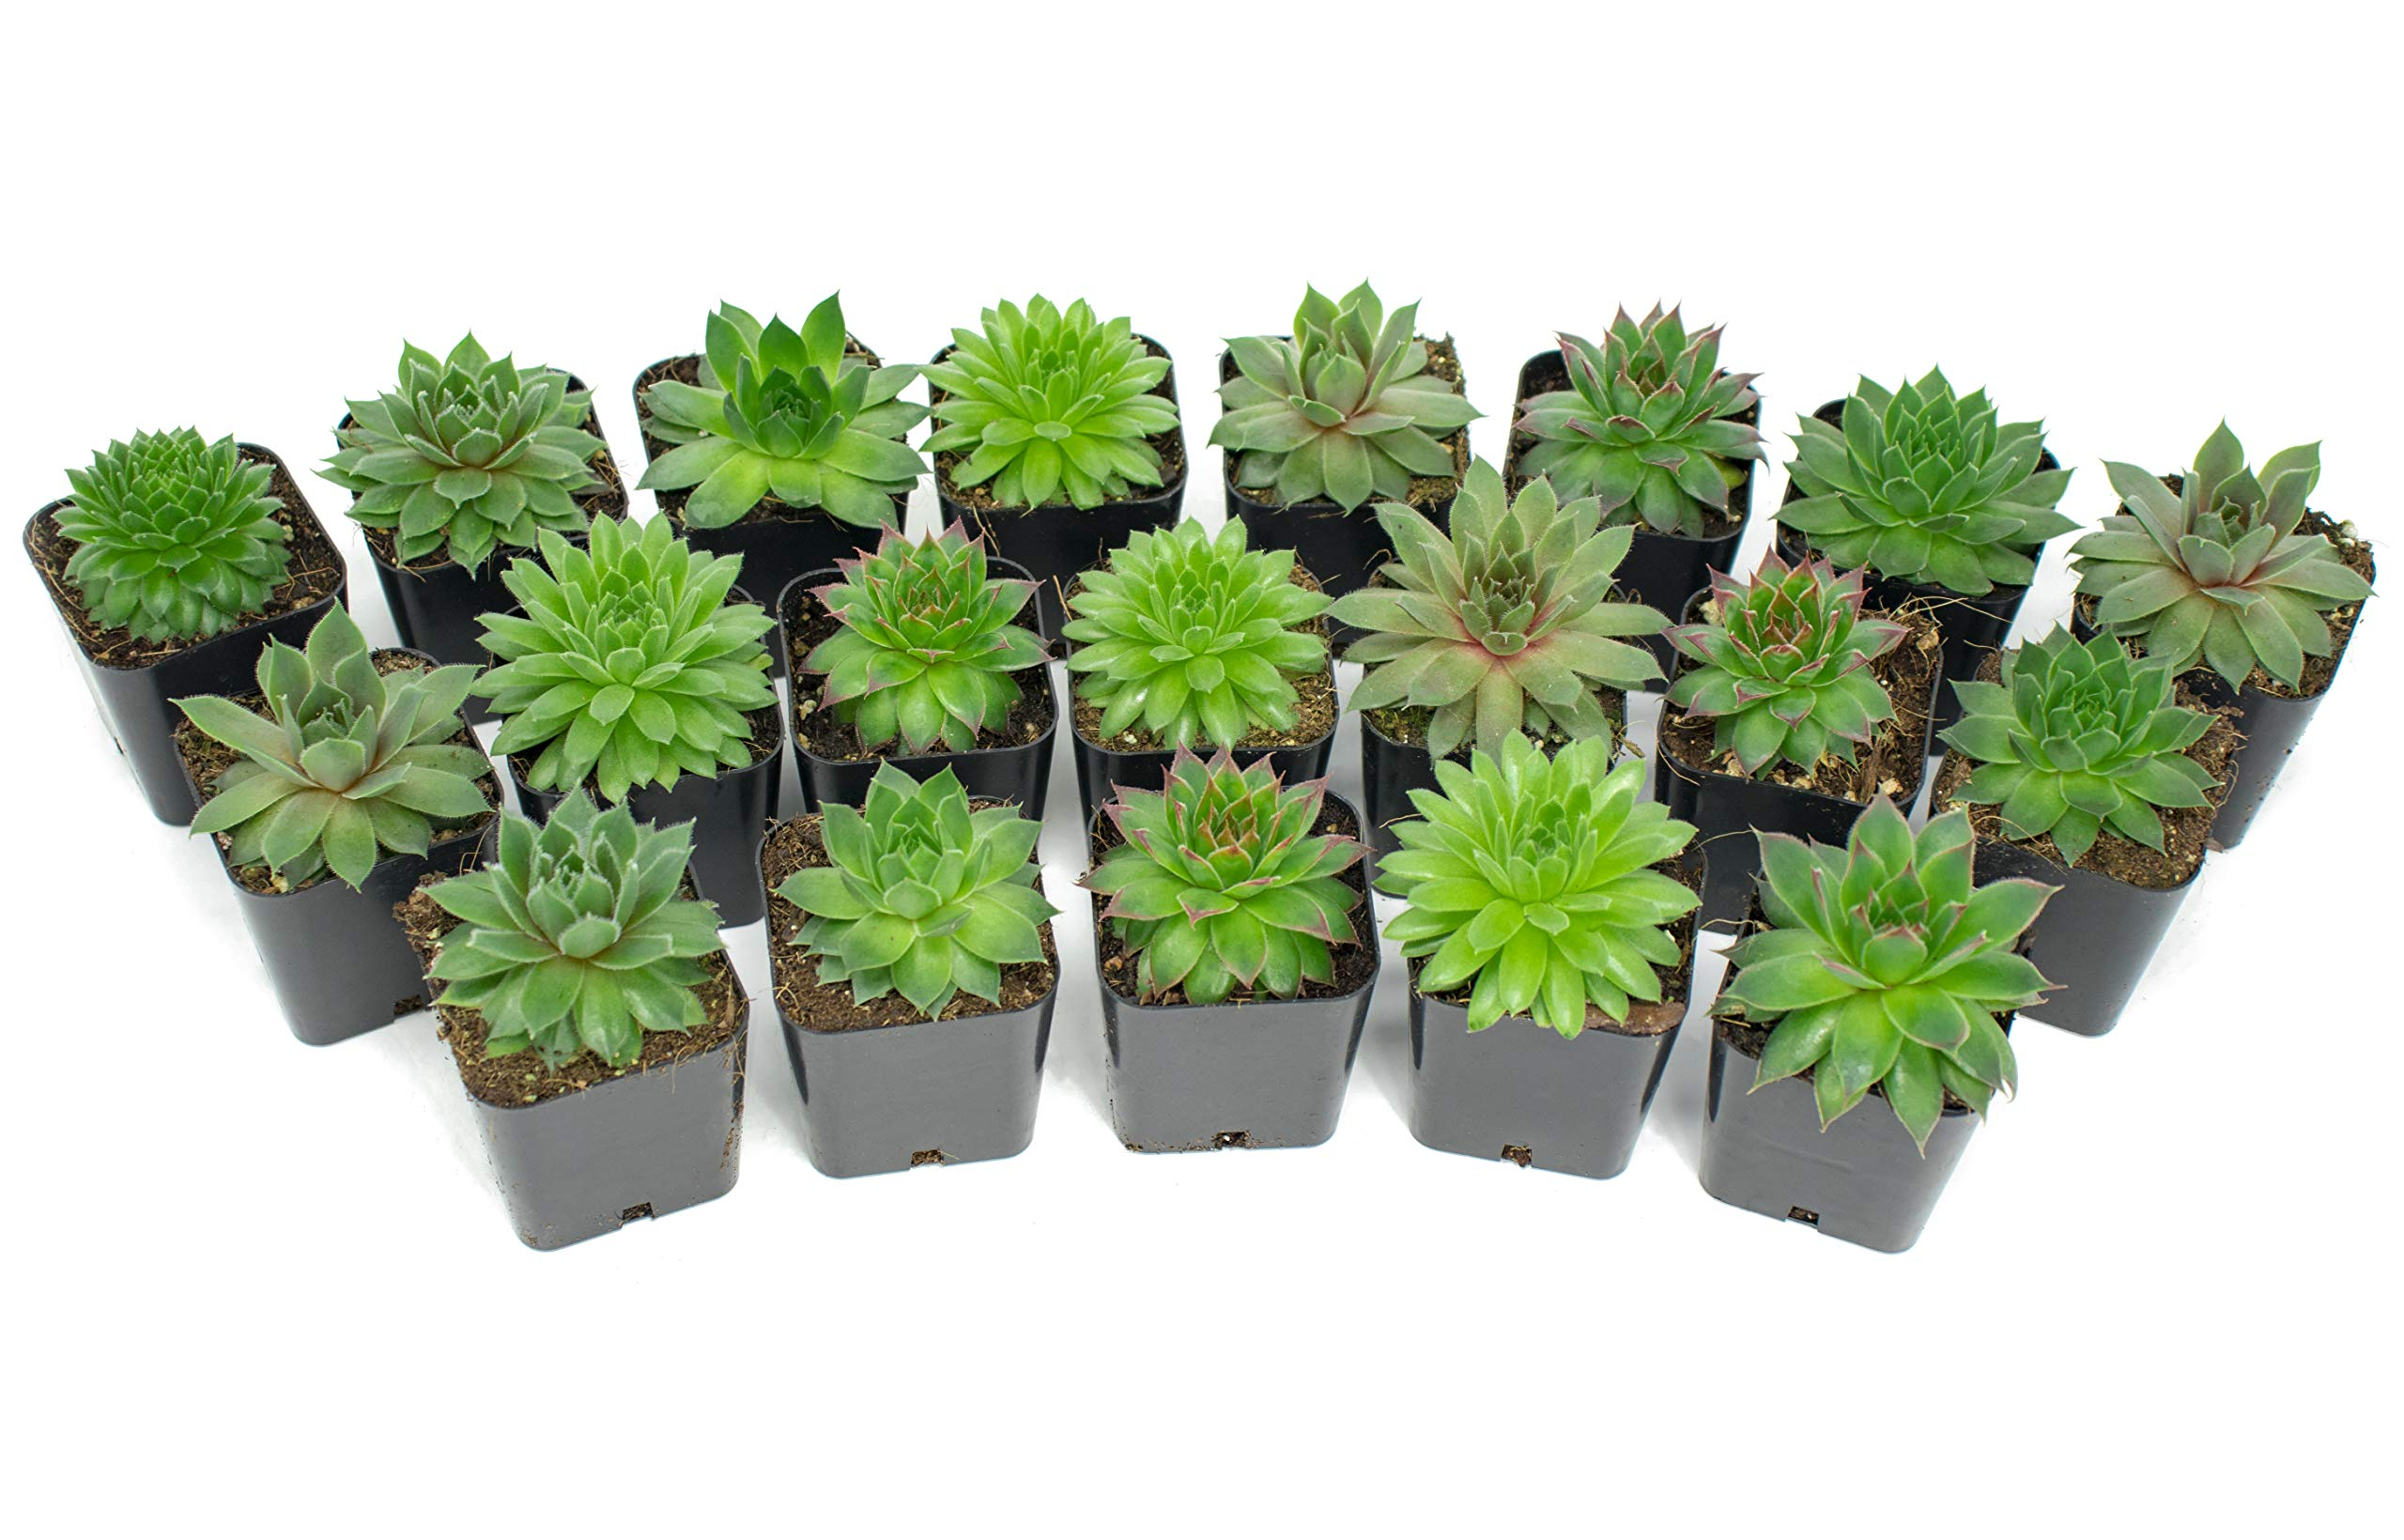 Succulent Plants   20 Sempervivum Succulents   Rooted in Planter Pots with Soil   Real Live Indoor Plants   Gifts or Room Decor by Plants for Pets by Plants for Pets